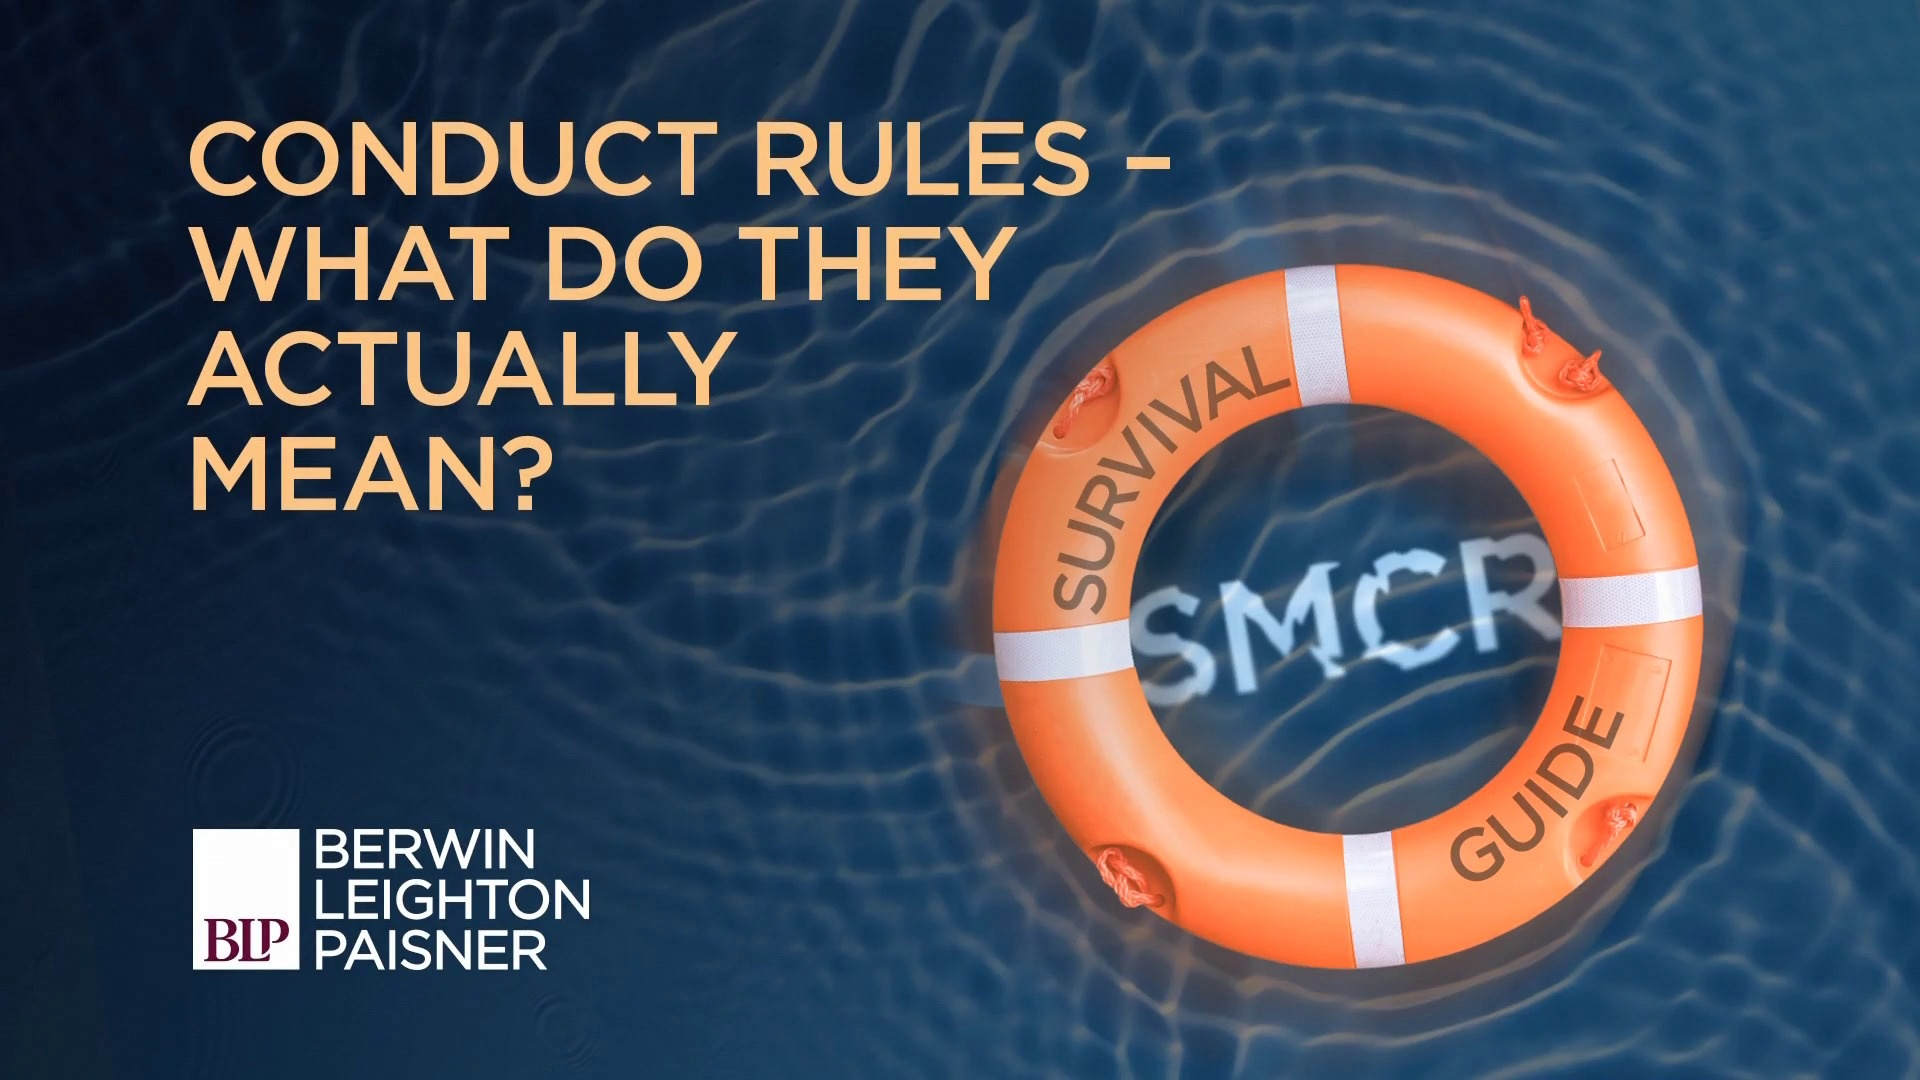 Still image from 'SMCR: Conduct Rules – what do they actually mean?' video